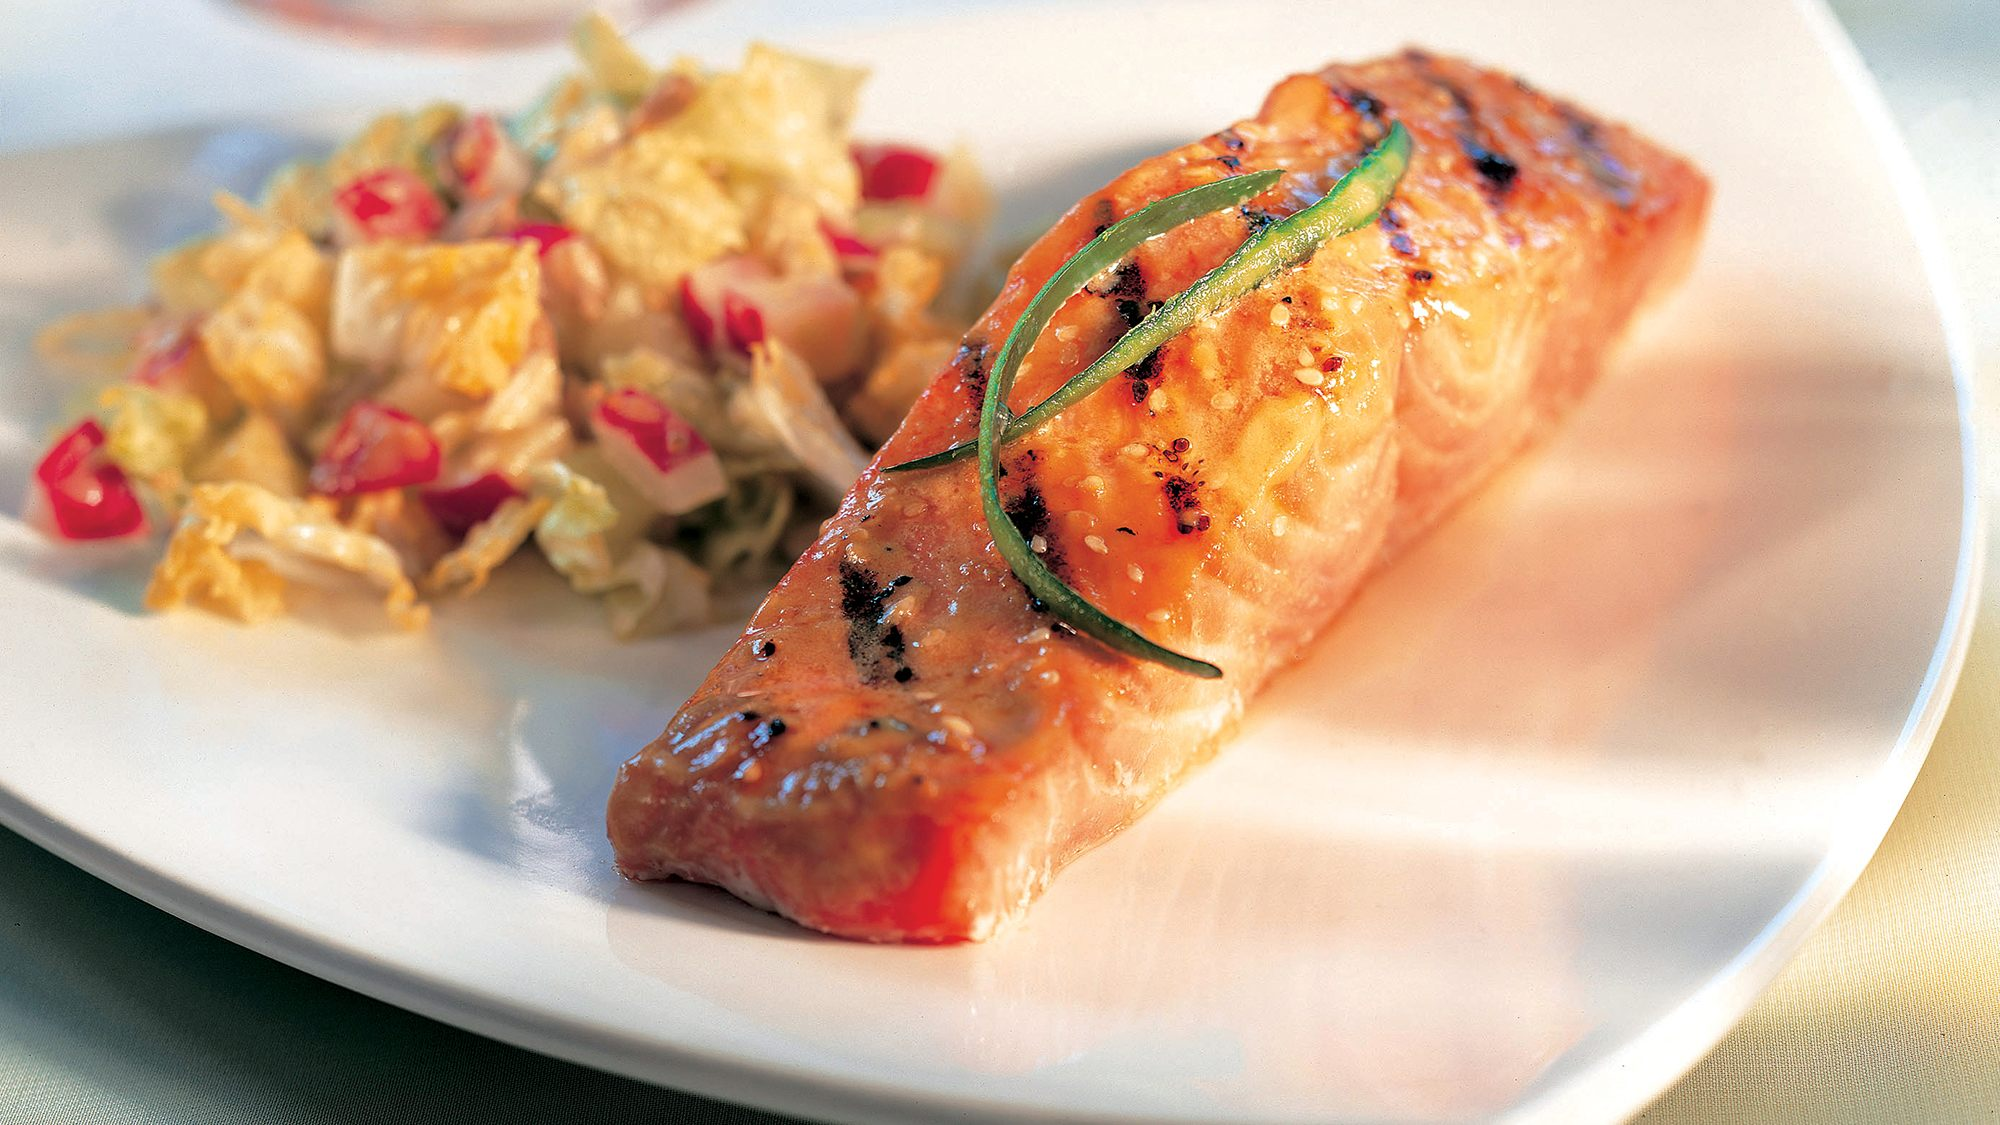 sesame-grilled-salmon-with-wasabi-slaw.jpg